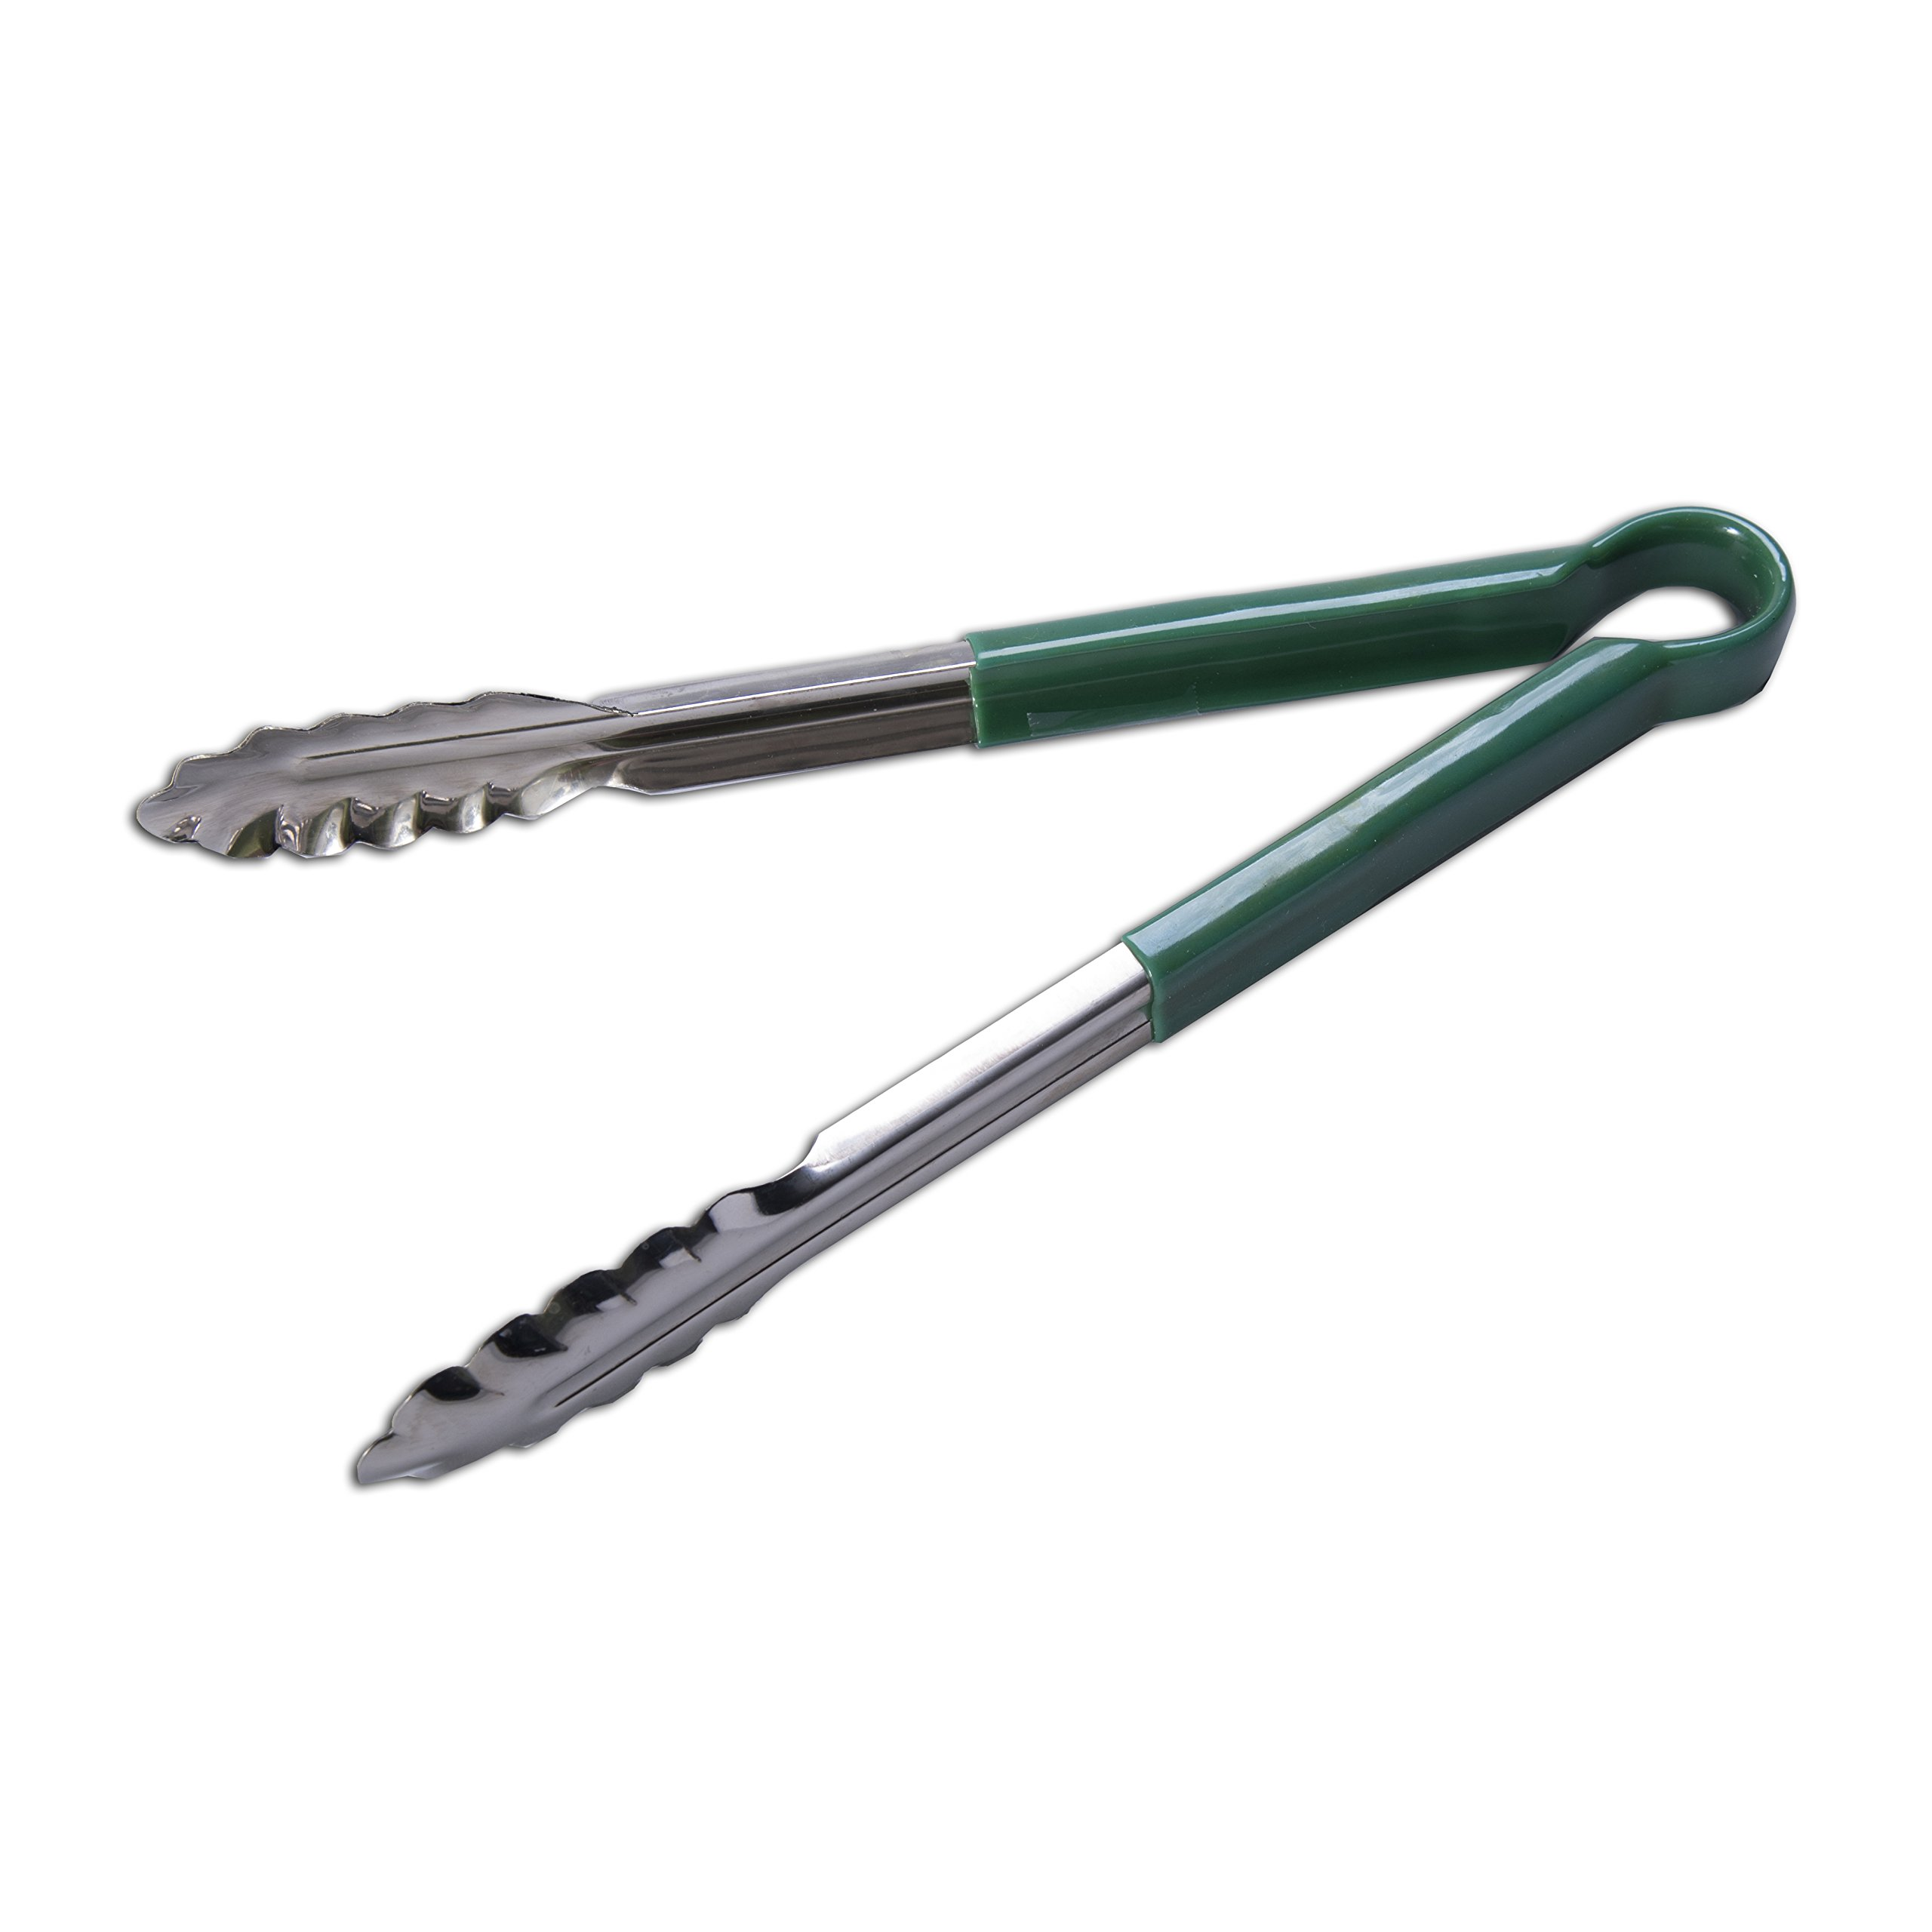 Cornerstone, Utility Tong, Green, S/S, 12'', Set of 12